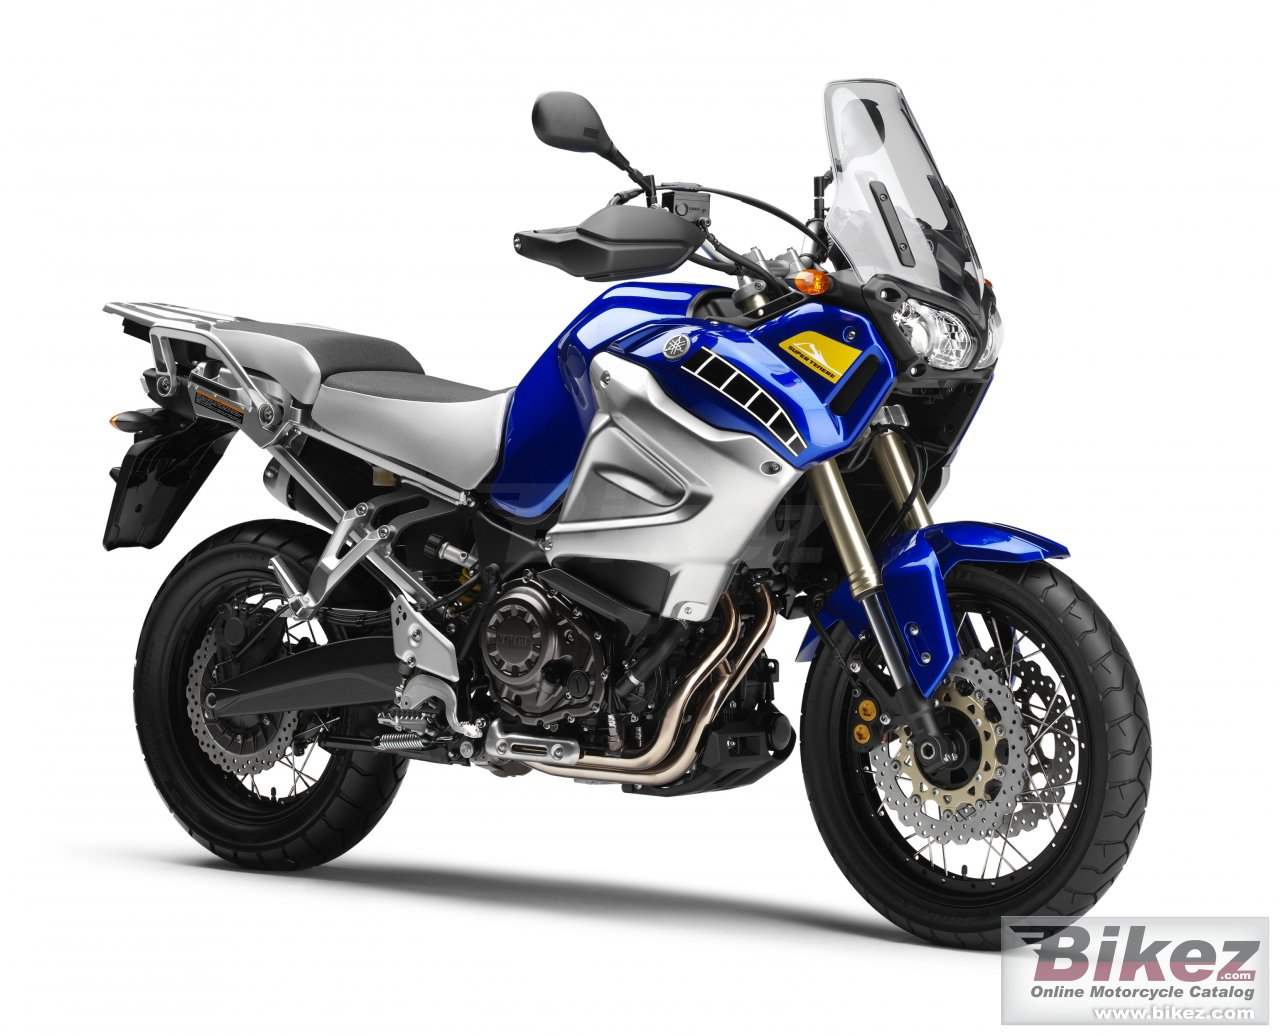 Big Yamaha xt1200z super tenere picture and wallpaper from Bikez.com